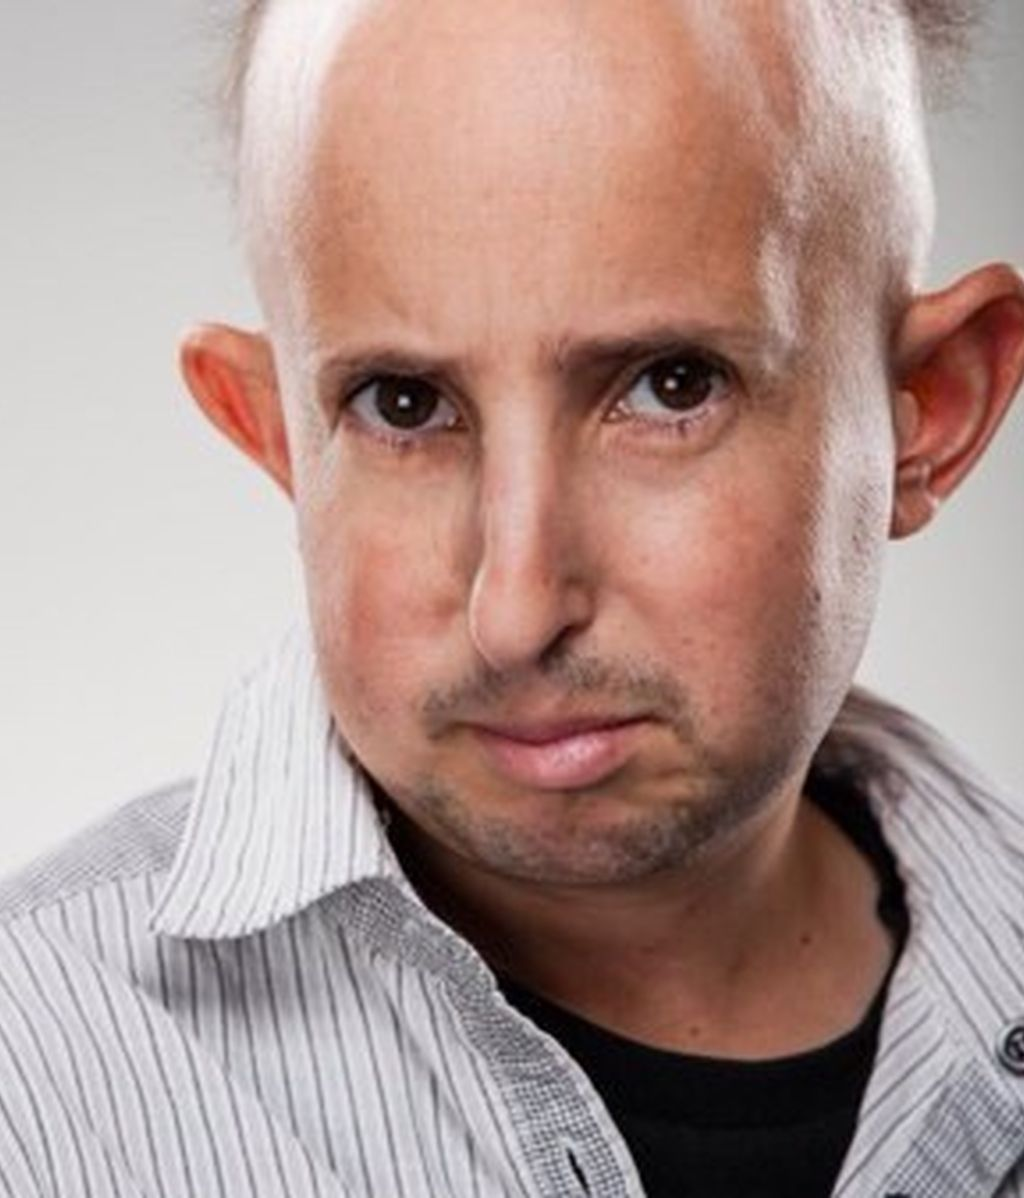 Fallece el actor Ben Woolf